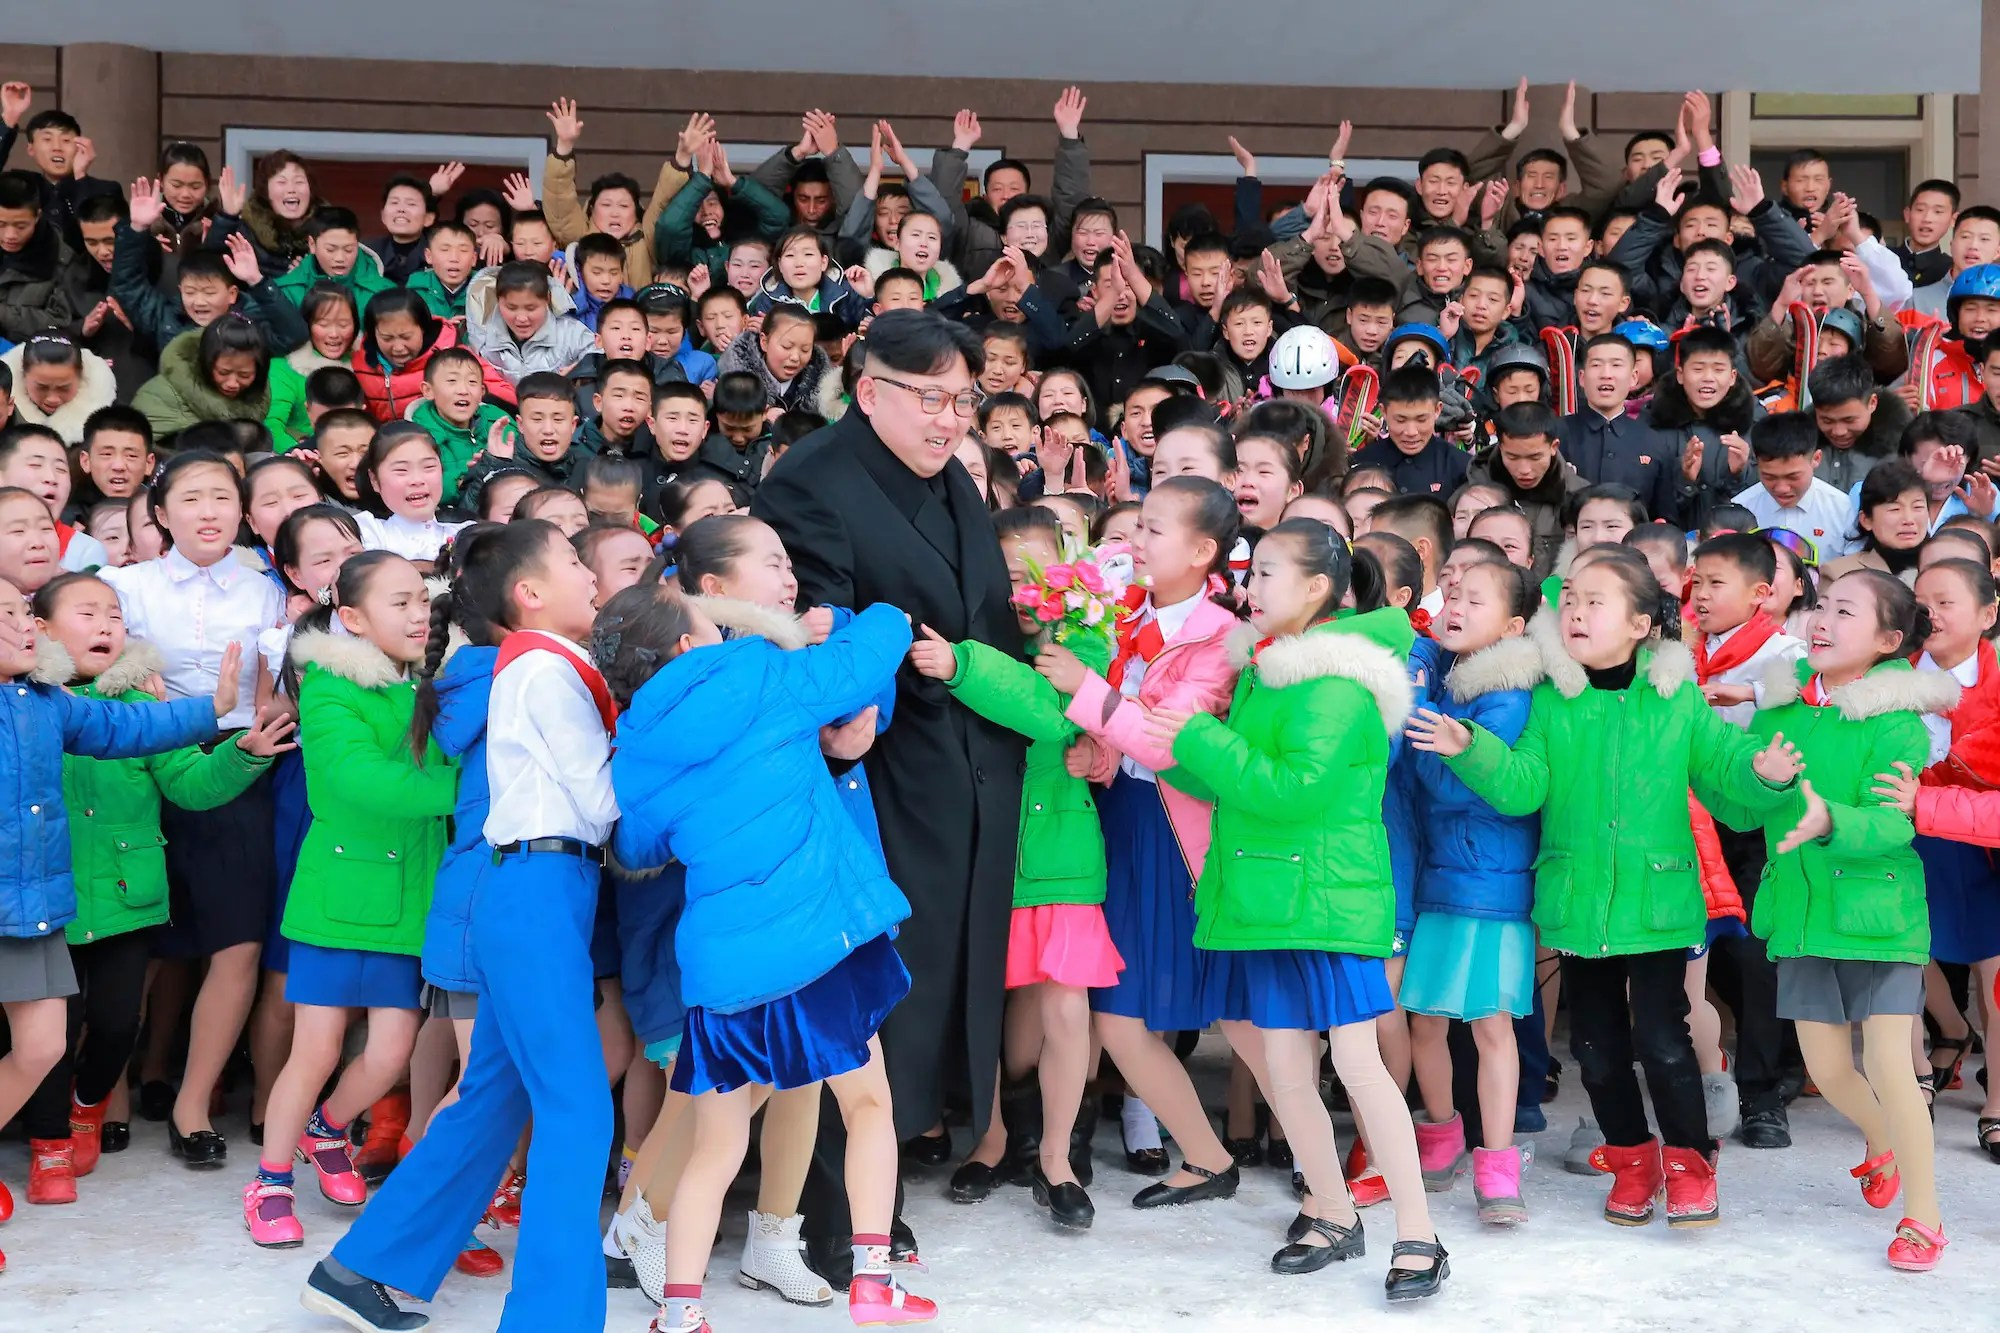 2. Kim Jong-un, who succeeded his father as supreme leader of North Korea in 2011, is just 33. He has continued to brutally repress opposition within the closed-off country and escalate testing of its nuclear missiles.